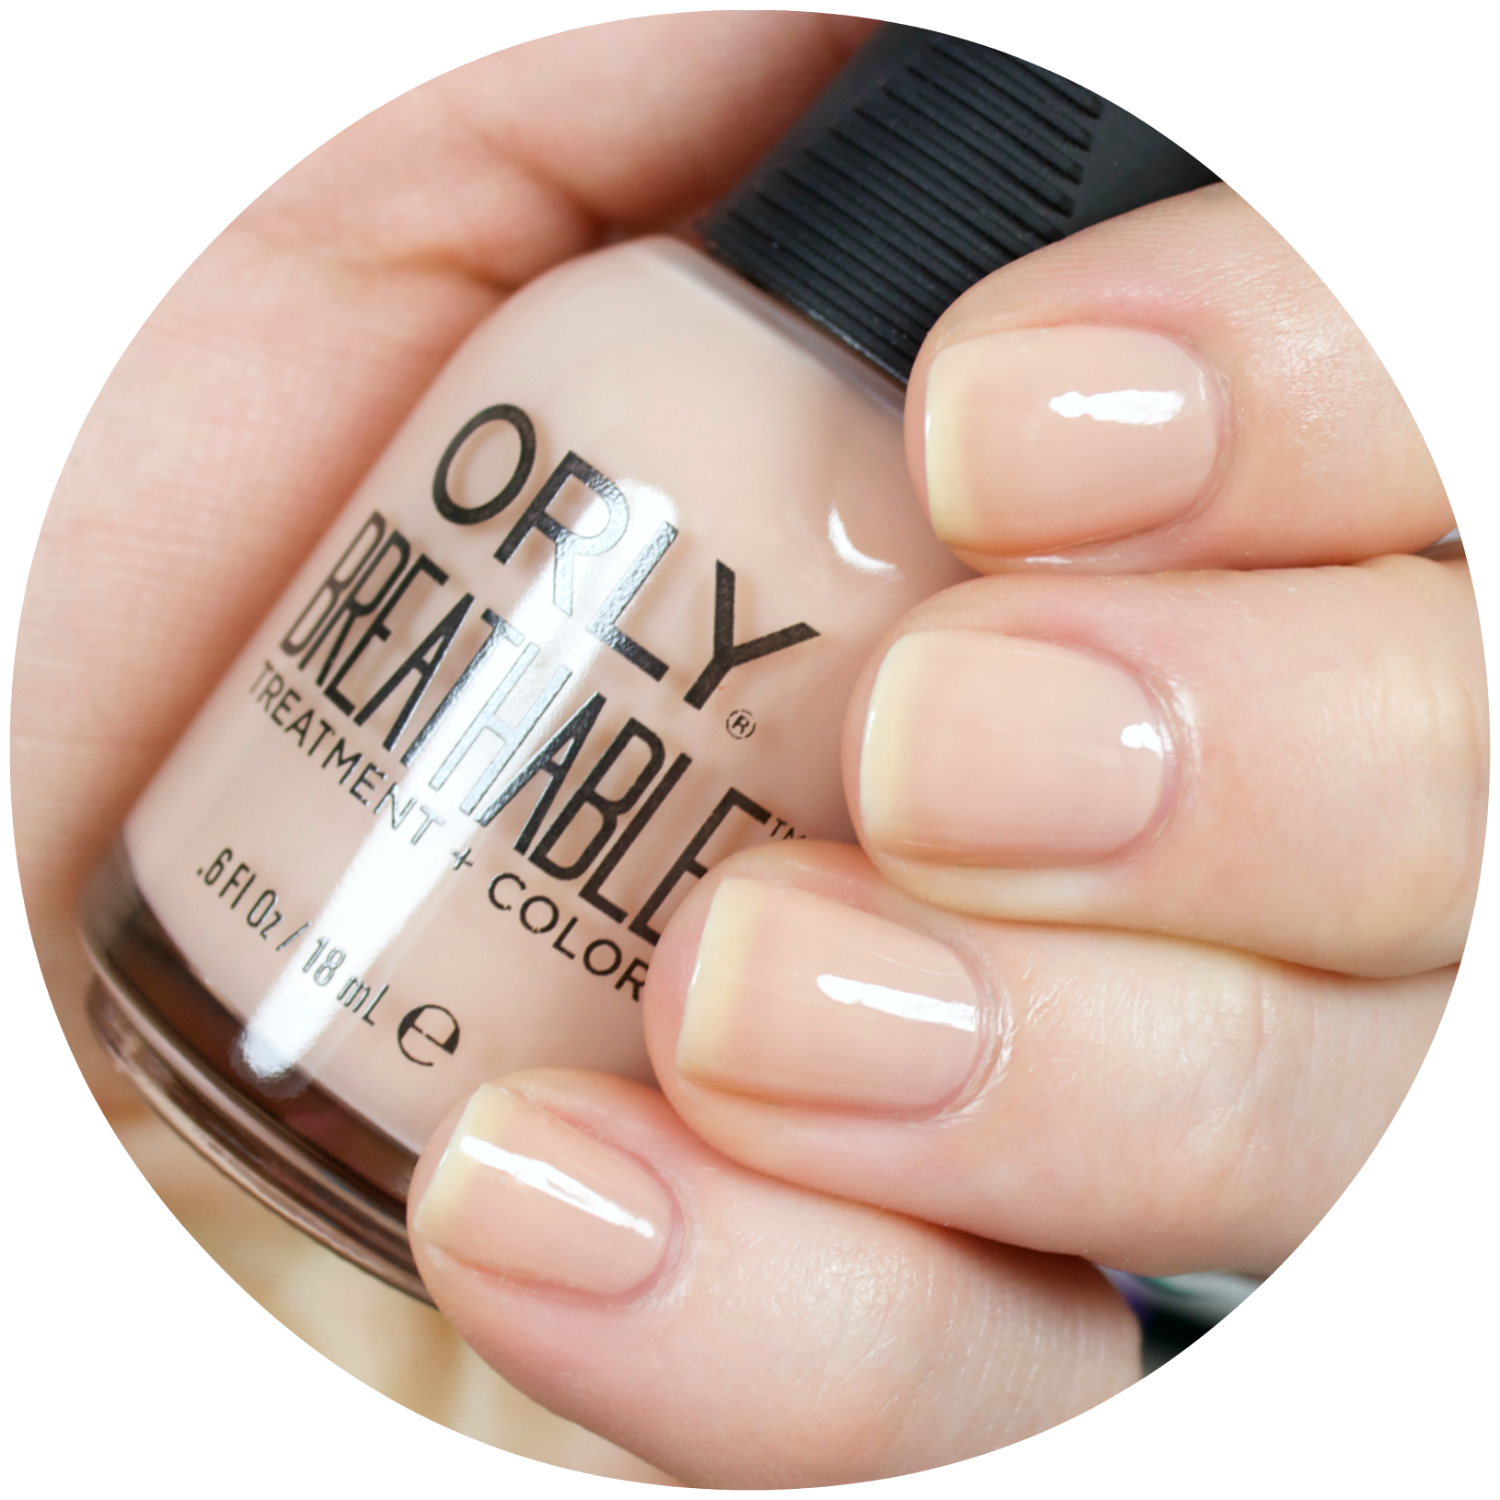 NEW! Orly Breathable Treatment + Color Nail Polish | Color nails